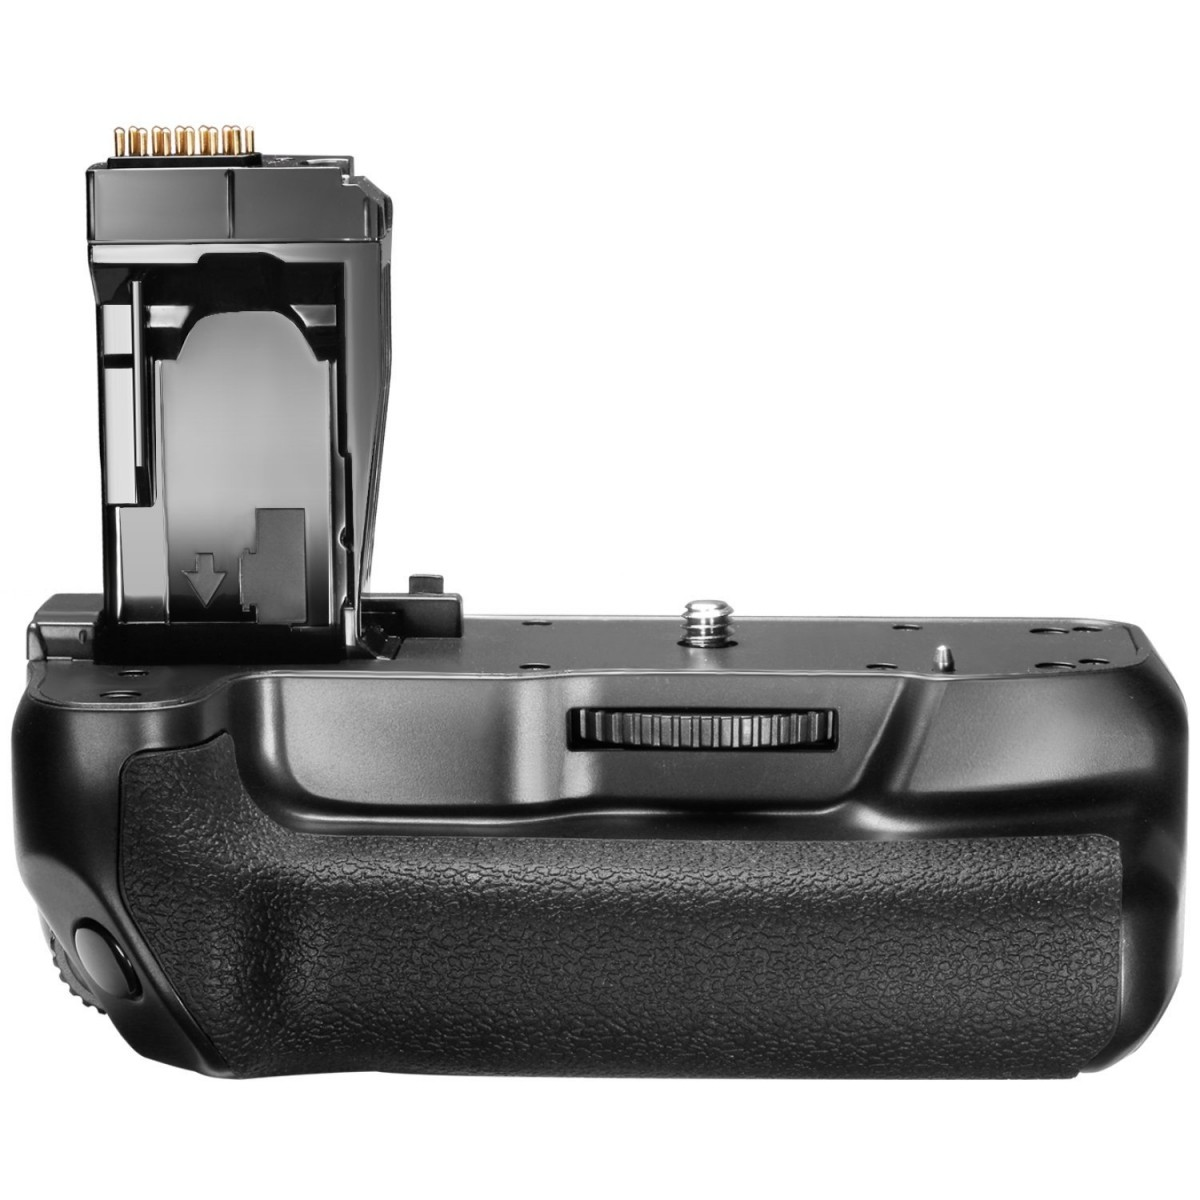 Kit Battery Grip BG-E18 + 2 Baterias LP-E17 + Carregador para Canon T6i T6s